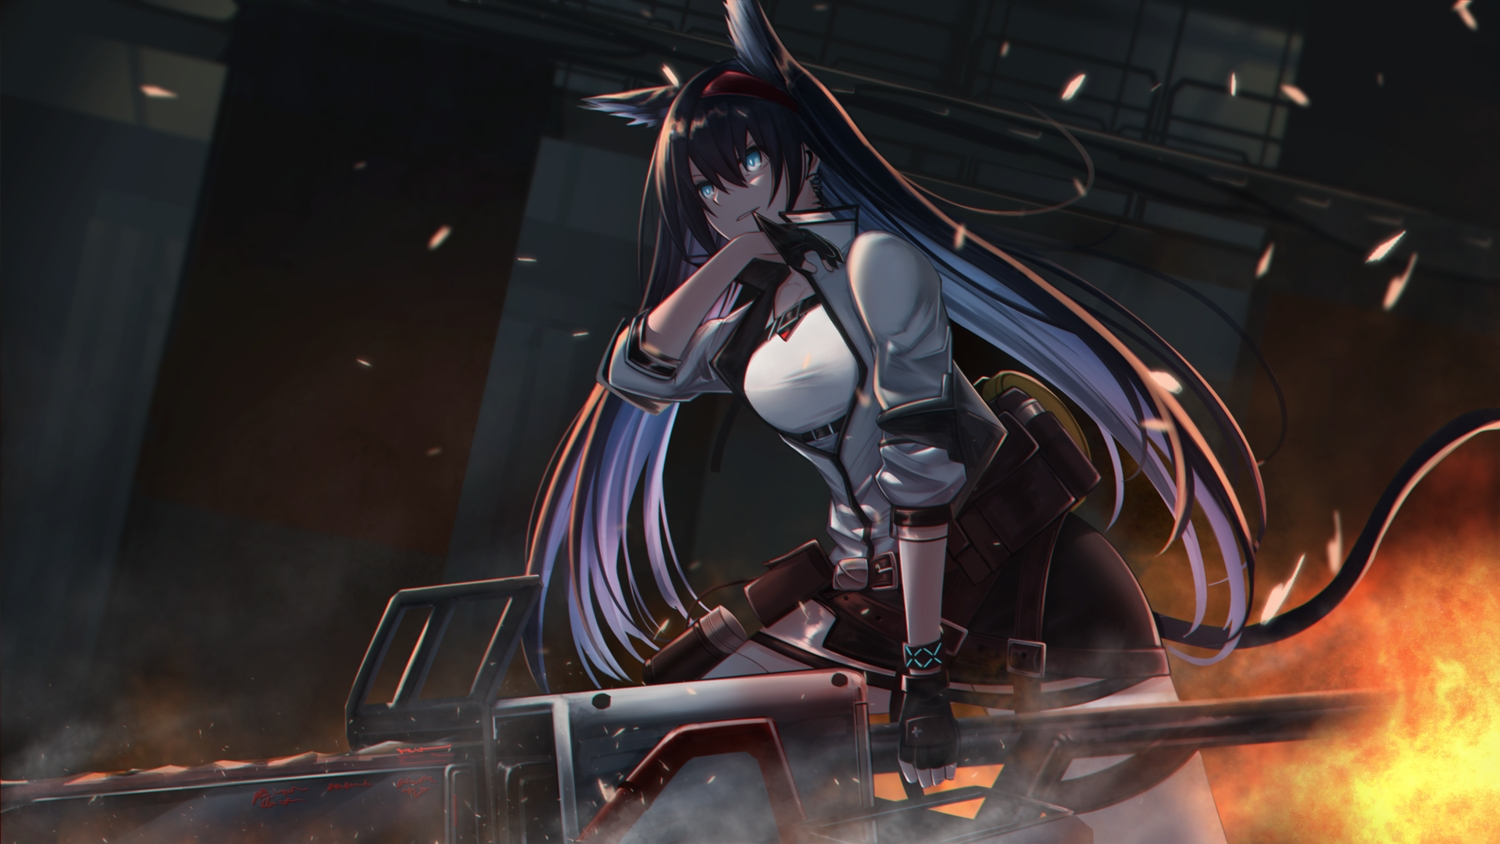 animal_ears aqua_eyes arknights blaze_(arknights) blitzkrieg_(index_unknown) catgirl chainsaw fire gloves long_hair tail weapon